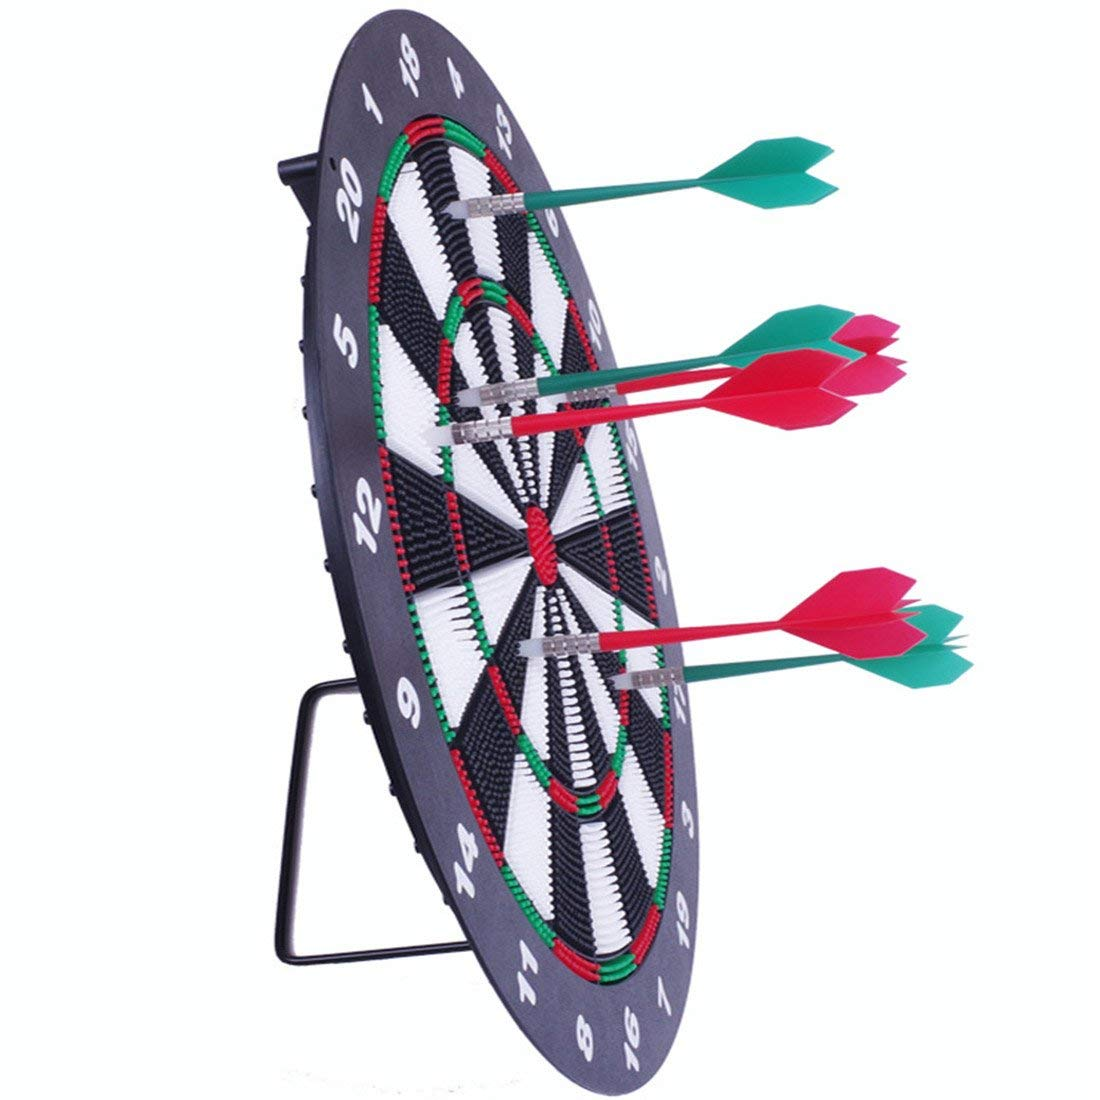 LEOSO Safety Dart Board Set with 6 Soft Tip Darts 16 Inch Rubber Dart Board for Kids Adults Office and Family Time